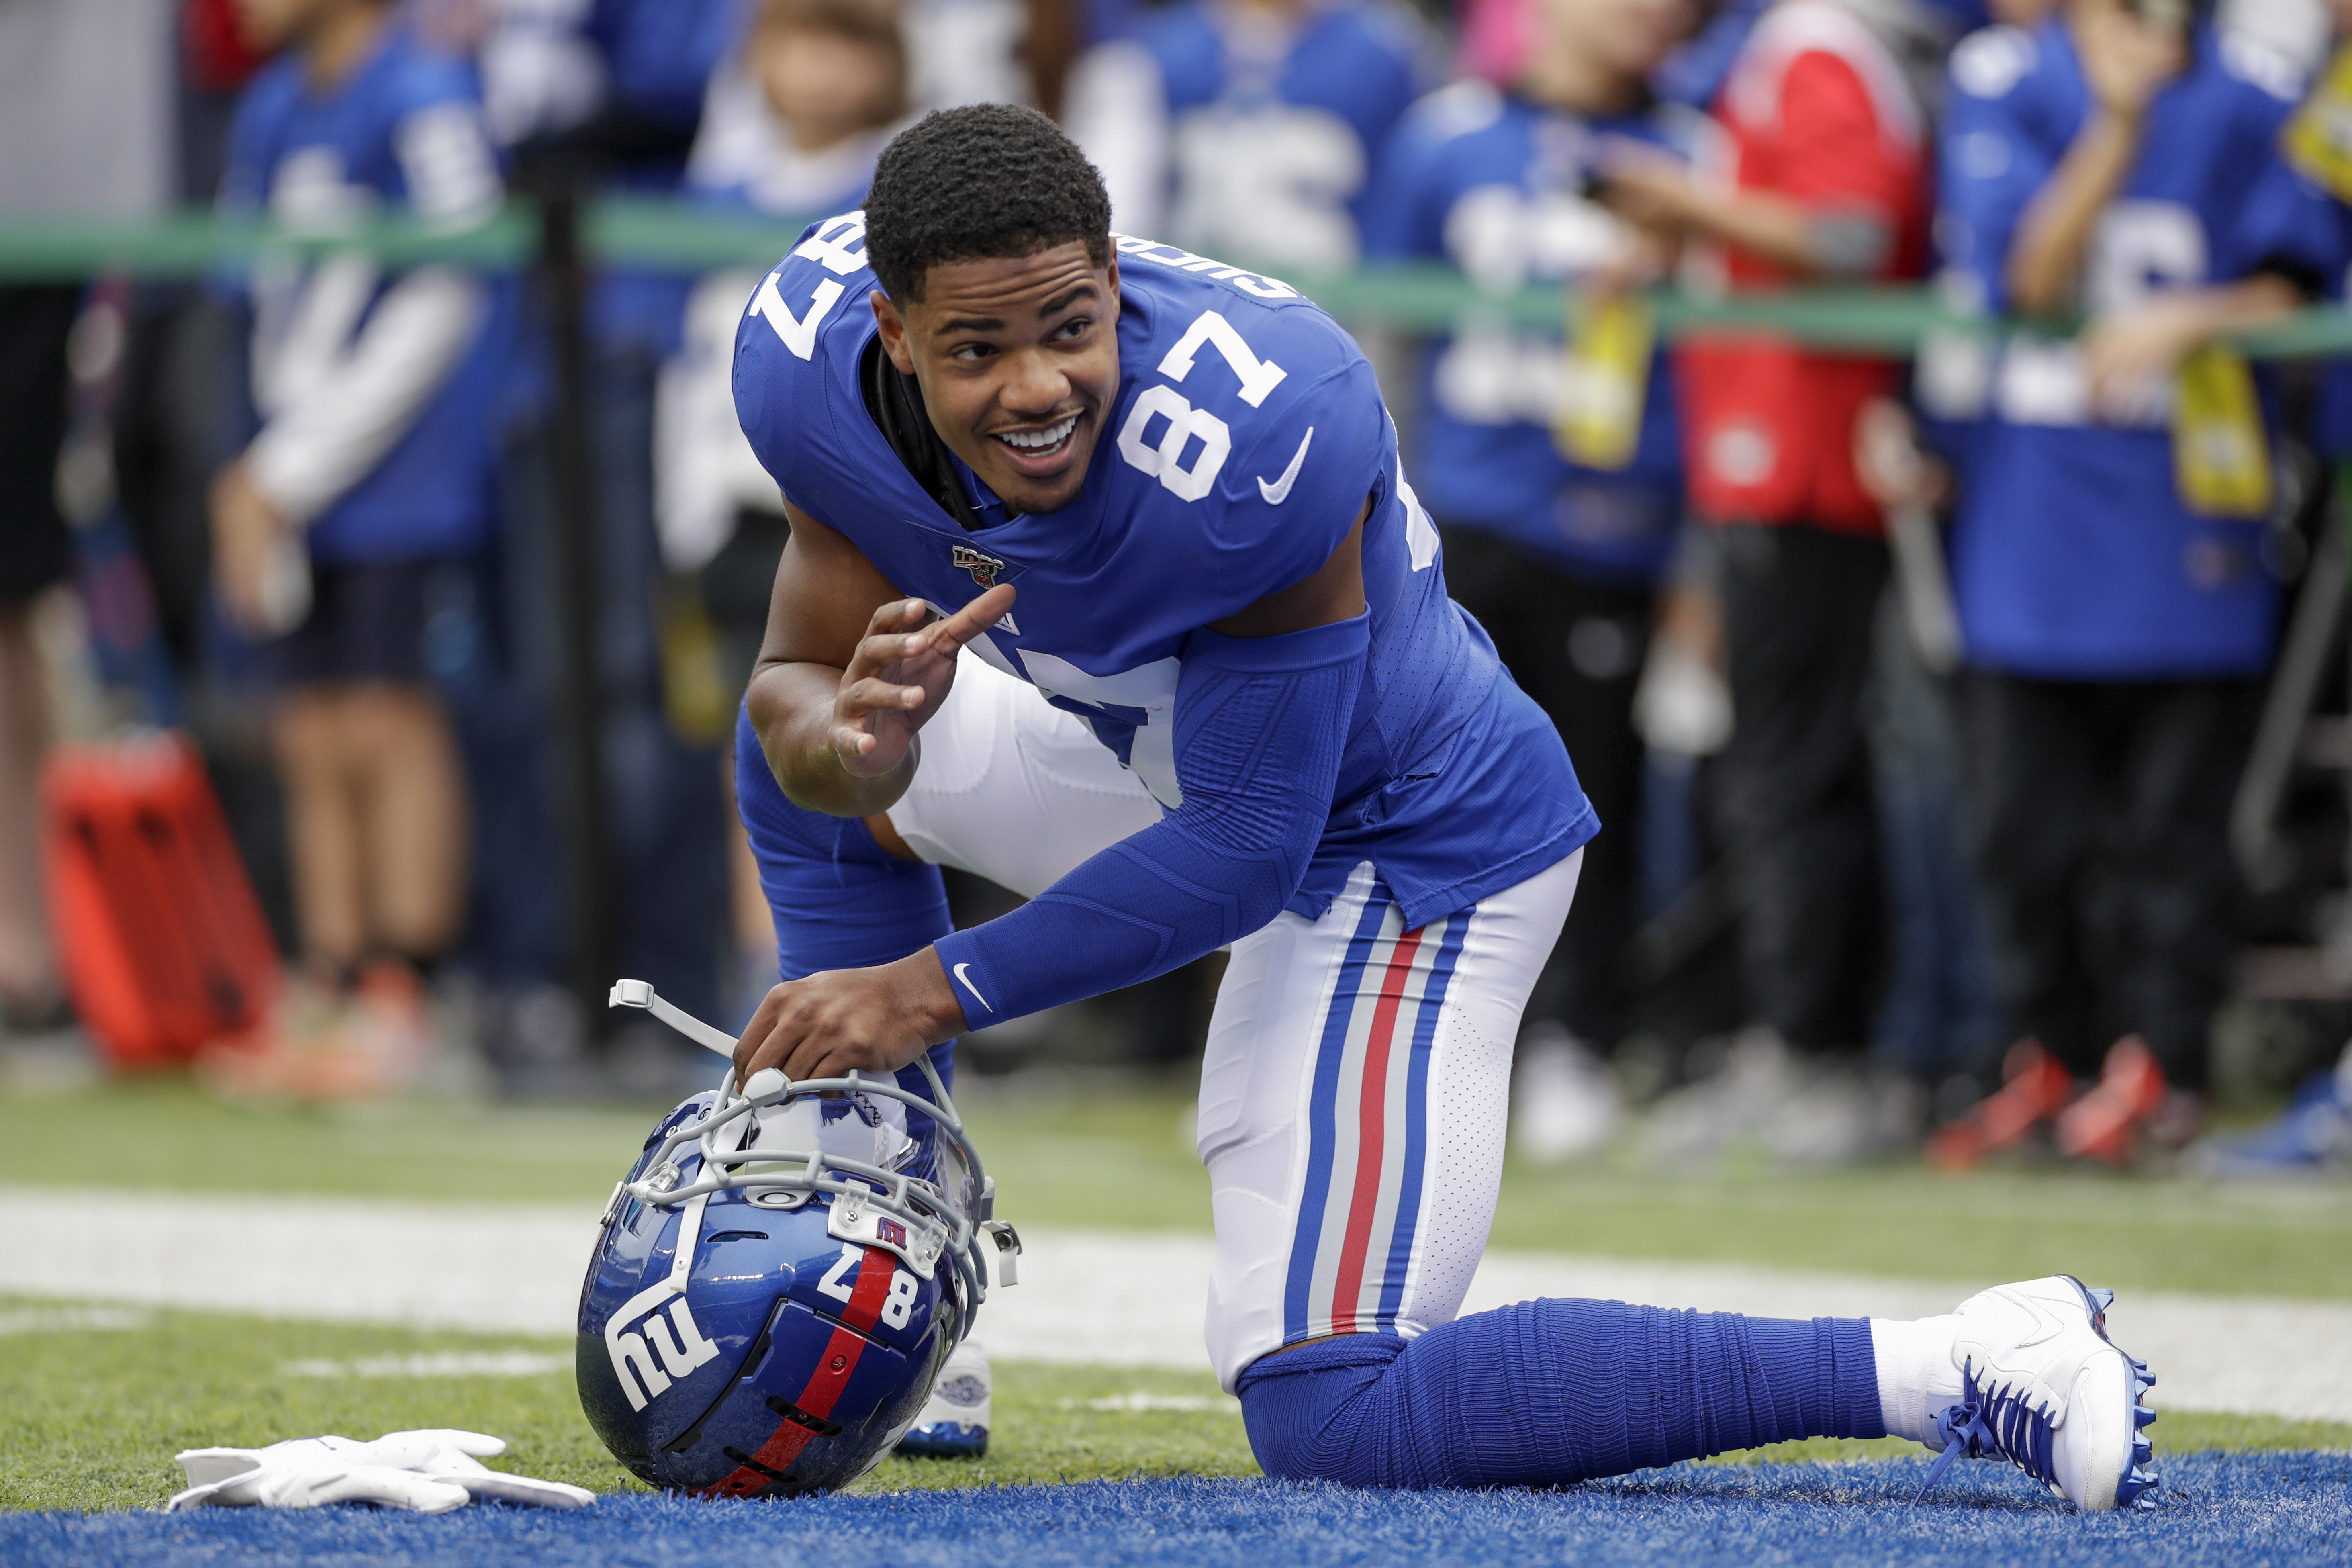 Giants put Shepard back in concussion protocol, out Monday